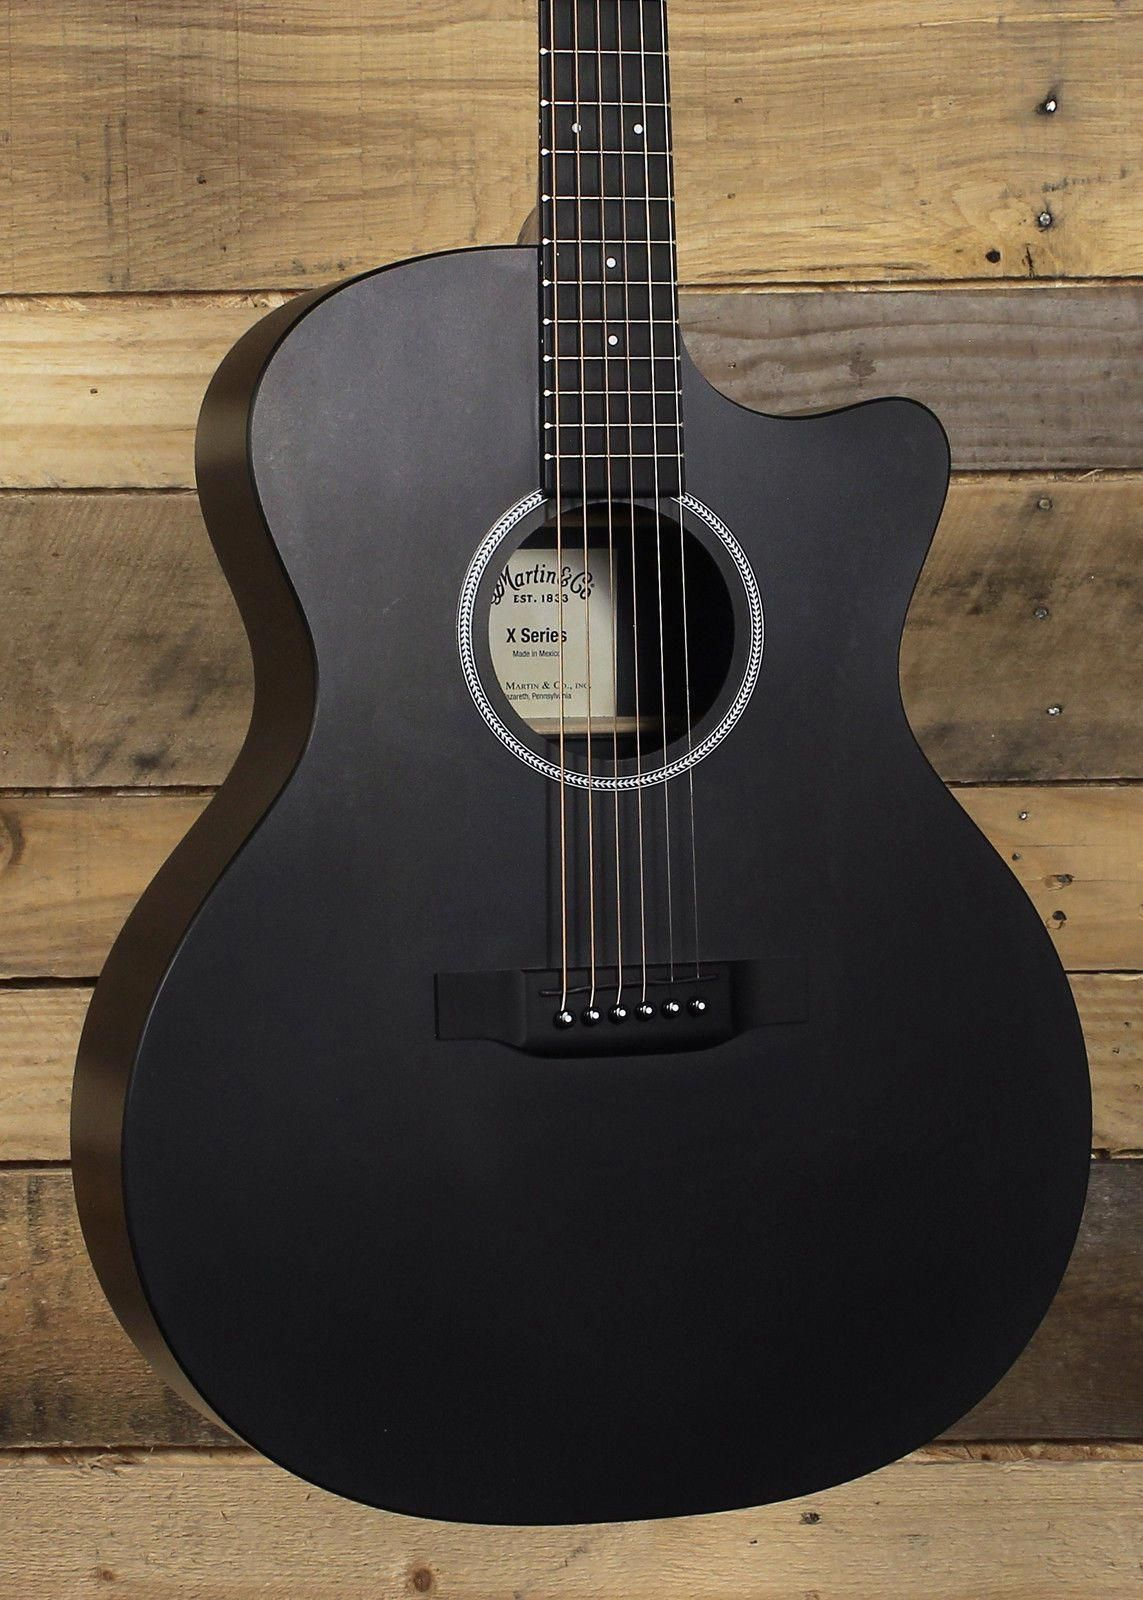 Martin Gpcxae Black Acoustic Guitar Black Acoustic Guitar Music Guitar Acoustic